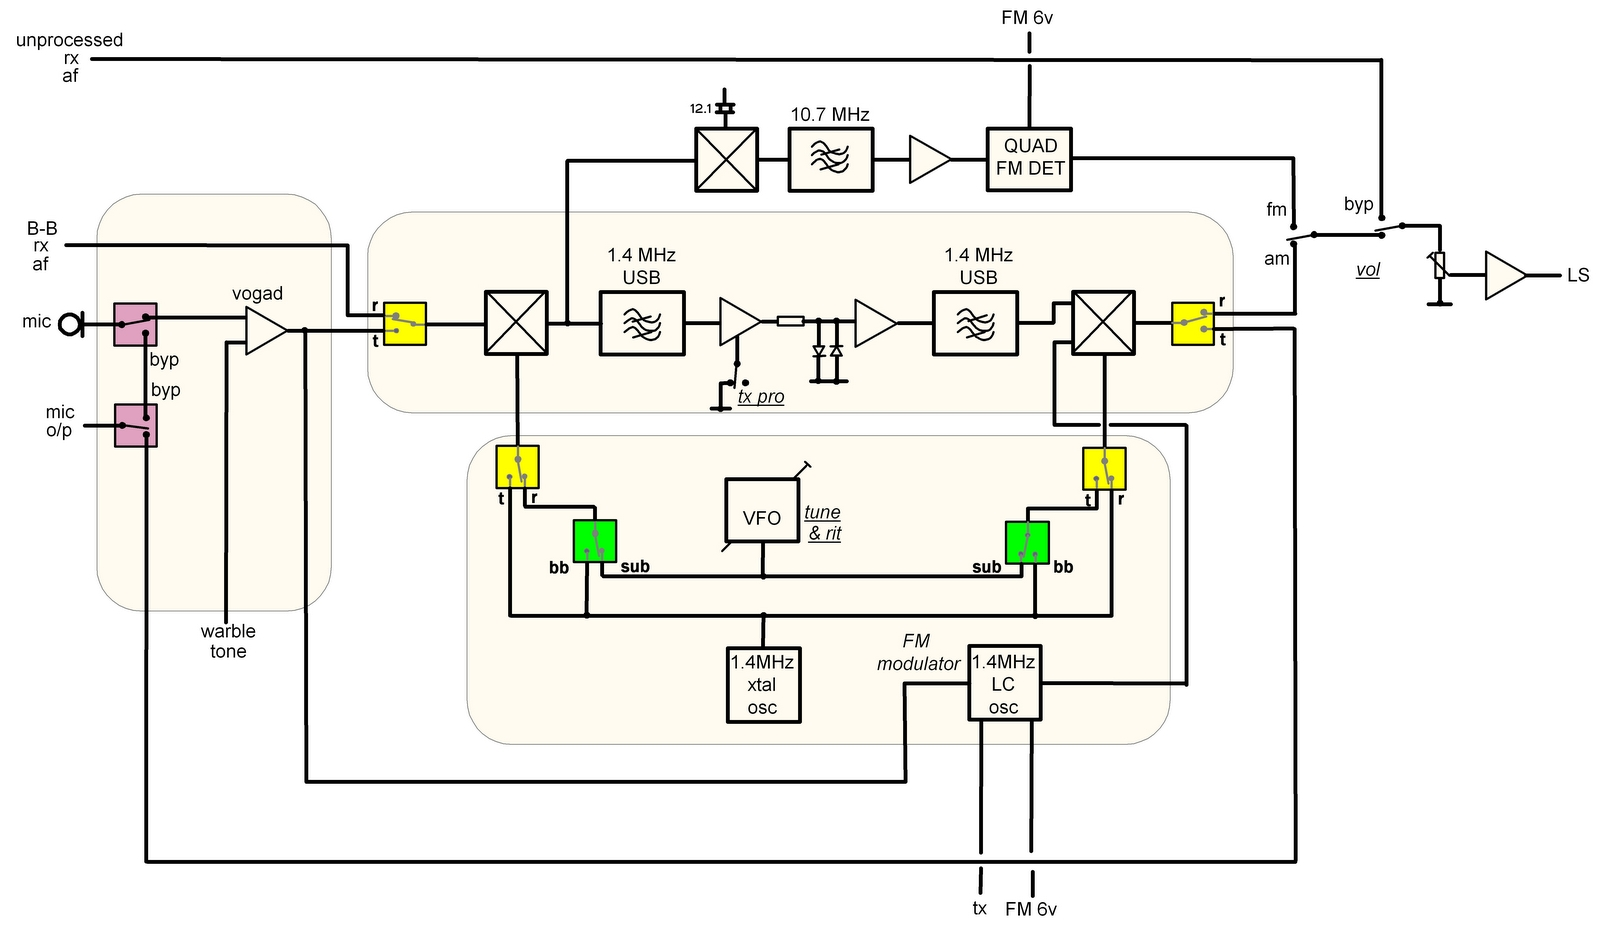 Page Usb Fm Transmitter Circuit Diagram All But One Part Of This Wish List Block And Unit Front Panel Came To Fruition At The Moment Only A Single Fixed 15 Khz Carrier Frequency Is